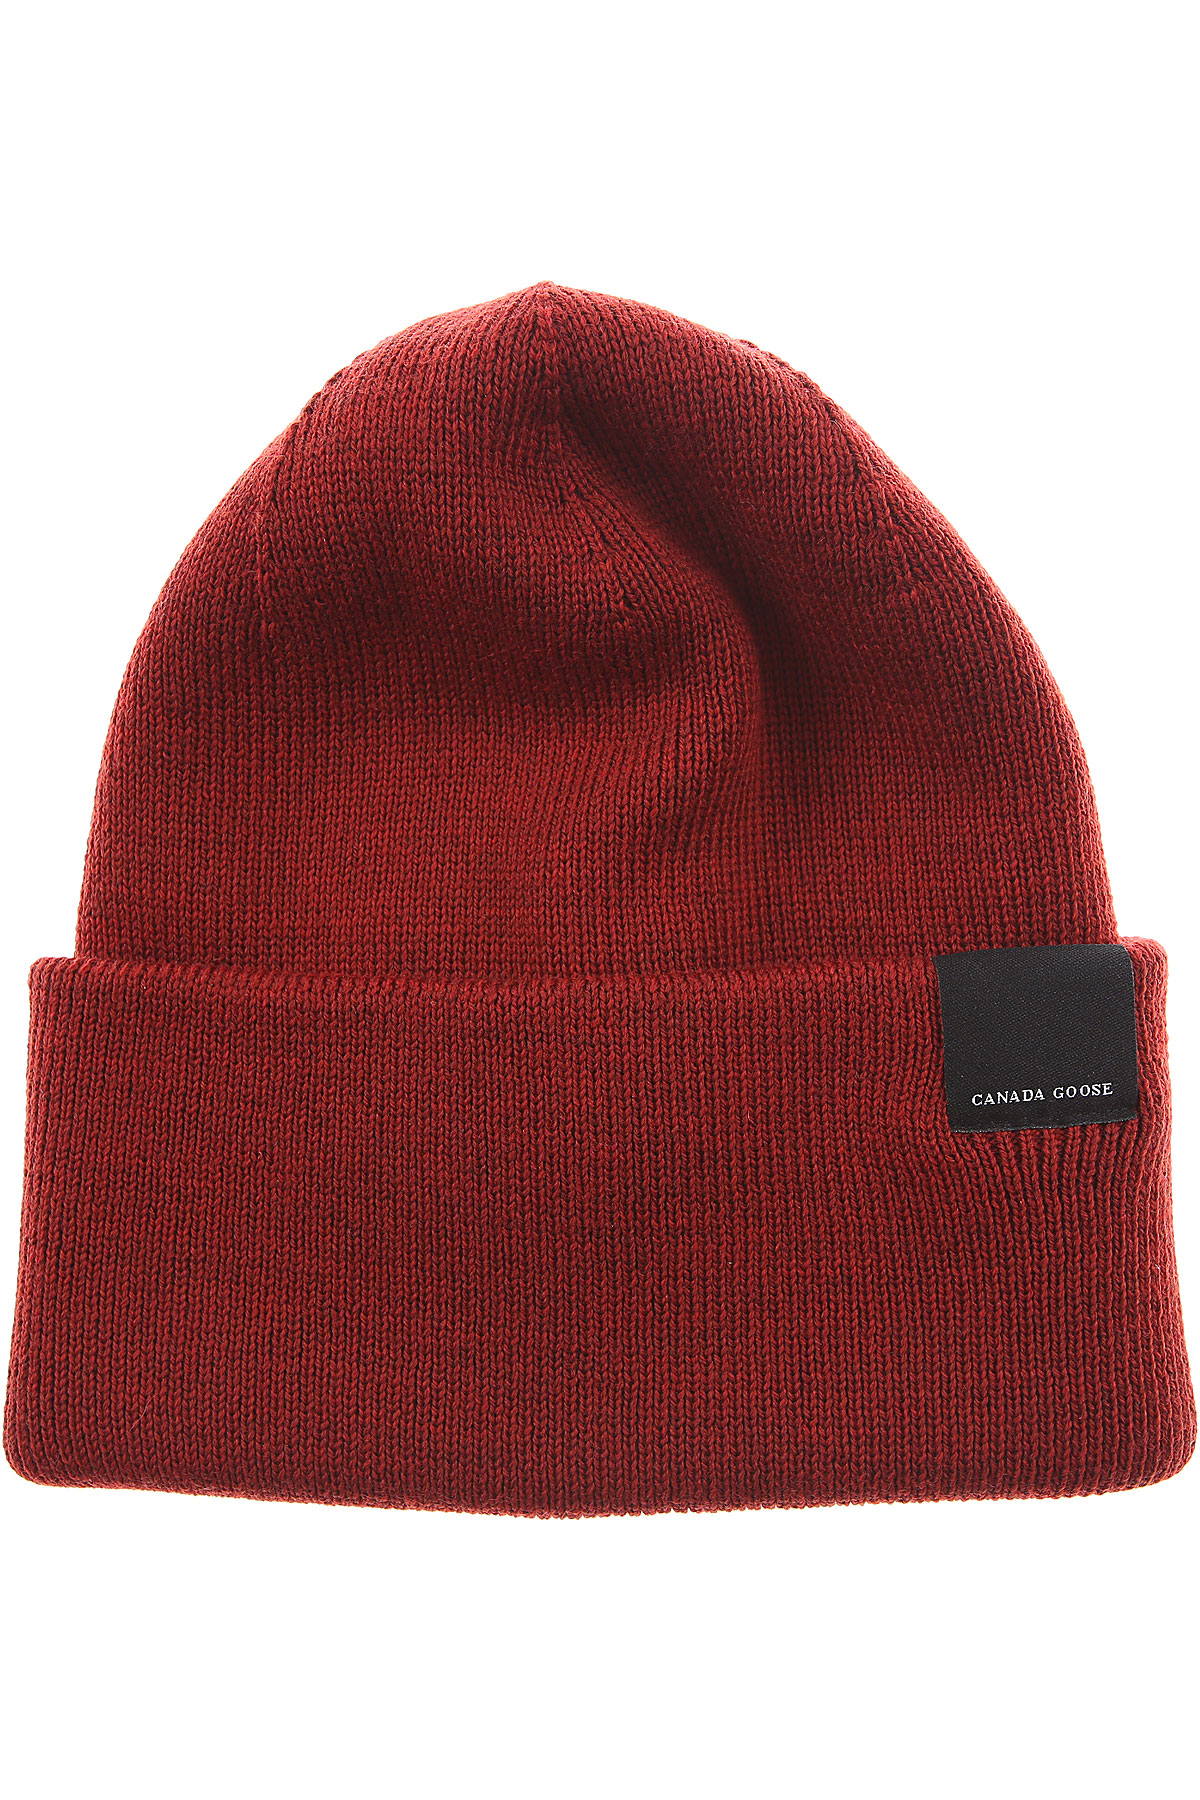 Image of Canada Goose Hat for Women, Redwood, Wool, 2017